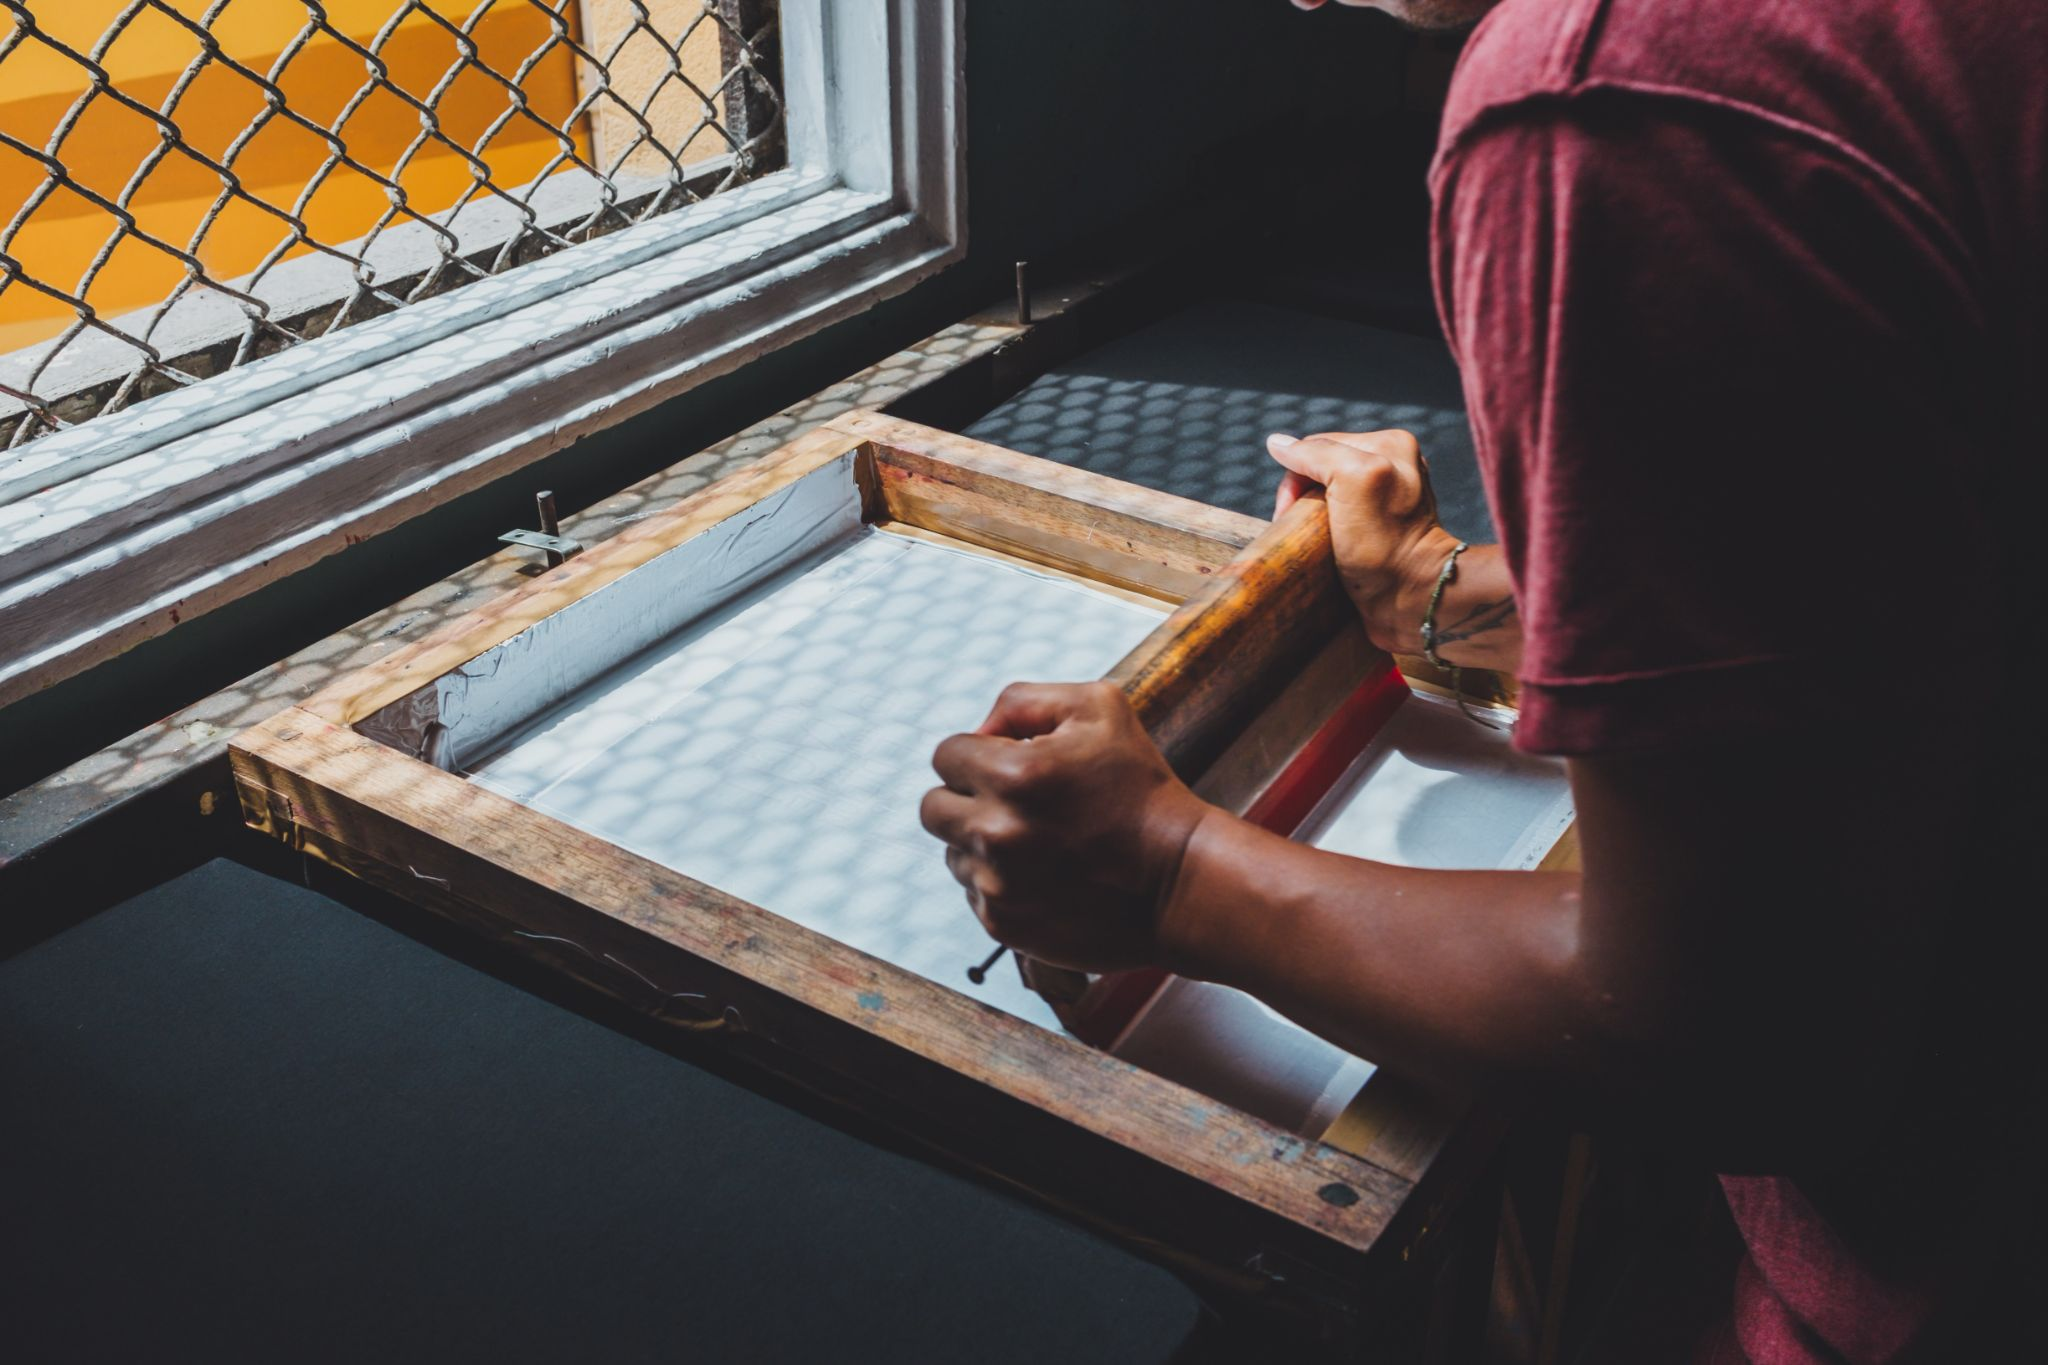 Screen printing in front of a window